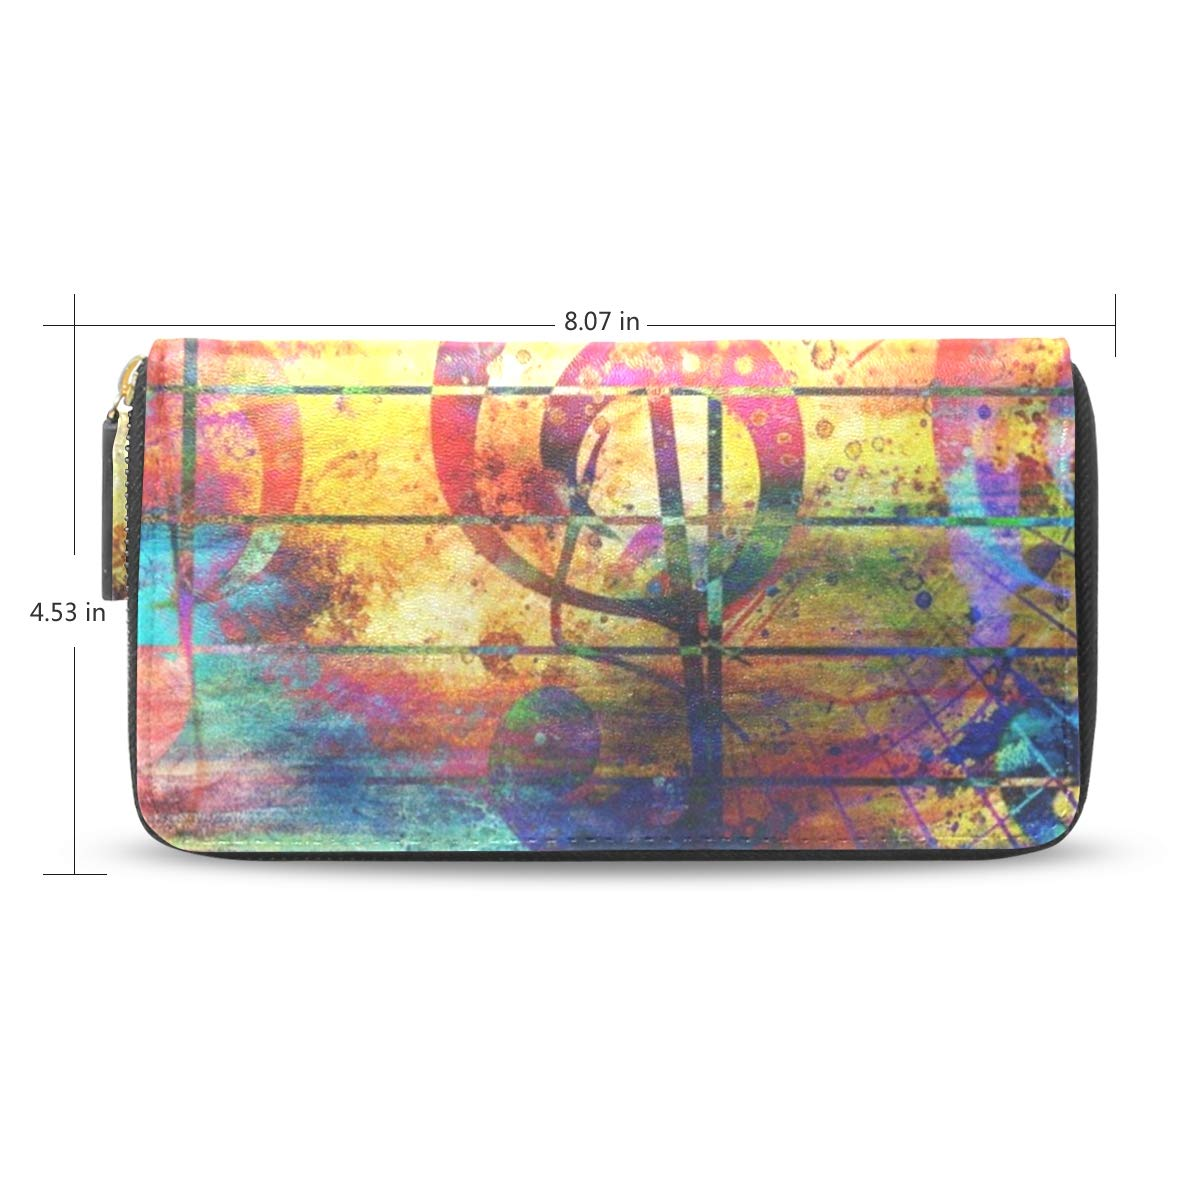 Womens Wallets Vintage Music Note Leather Passport Wallet Change Coin Purse Girls Handbags